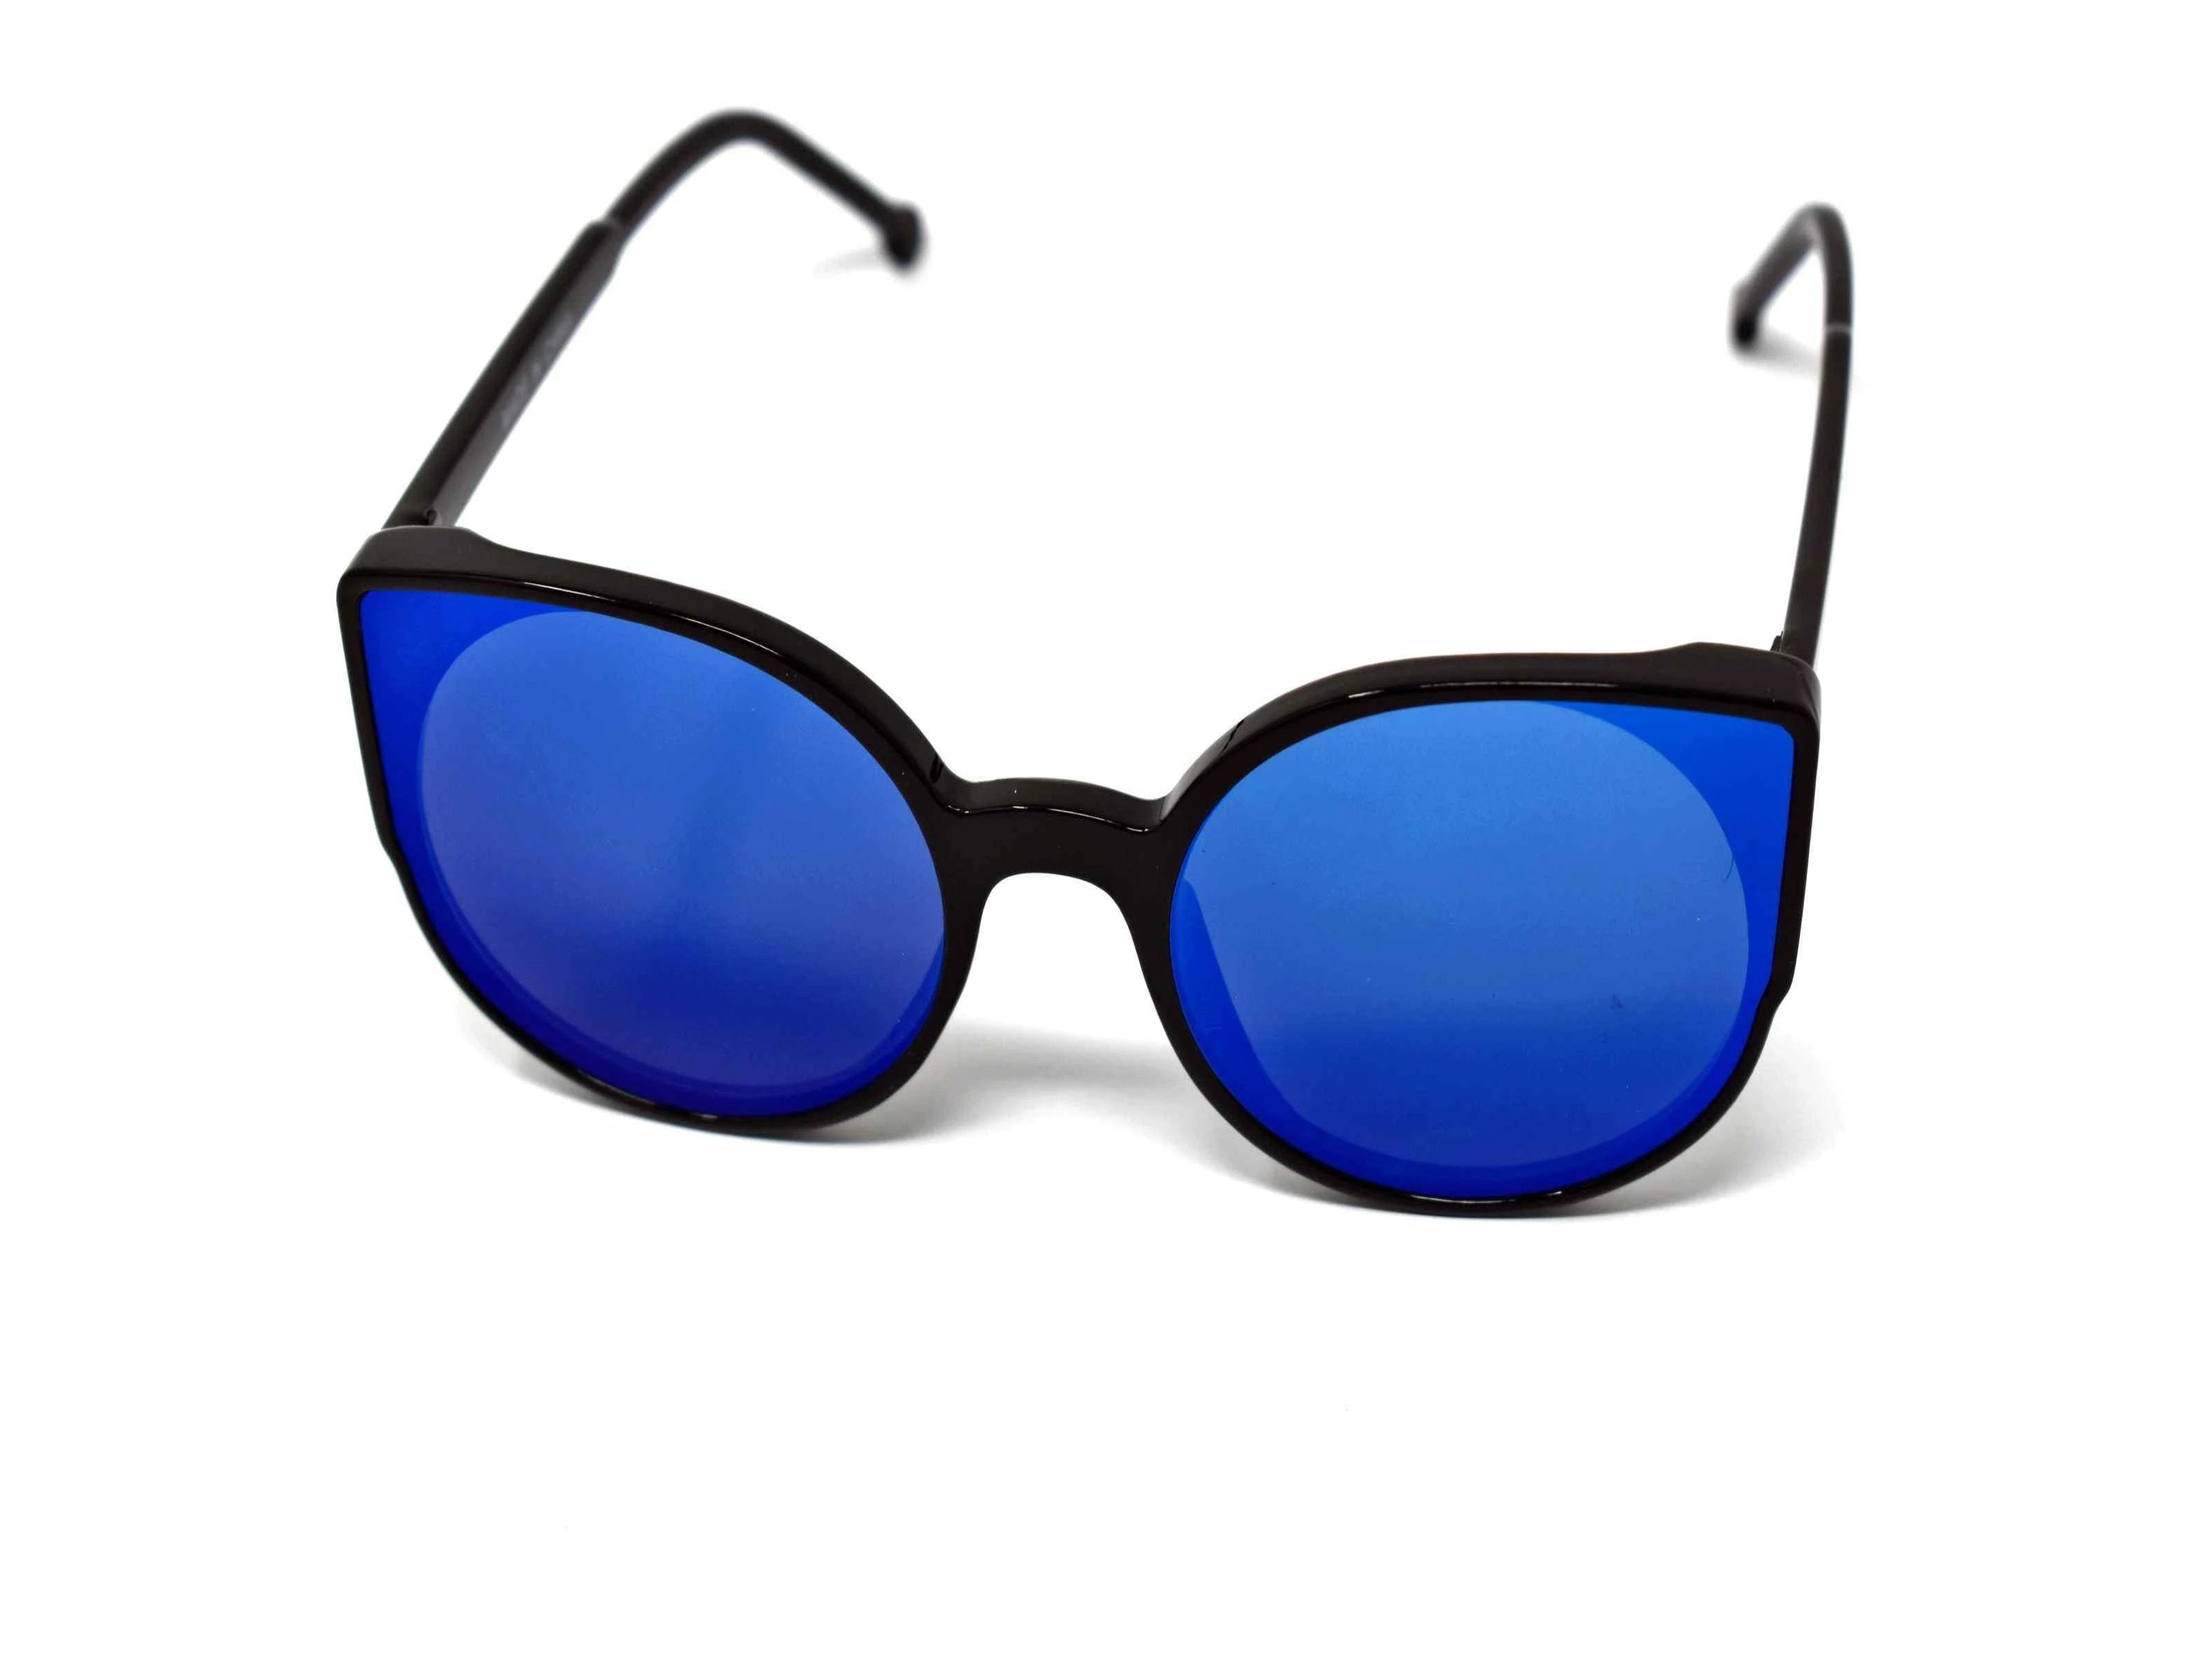 Say hello to our stylish Tansy black framed sunglasses with blue mirrored lens and a cat eye shape.